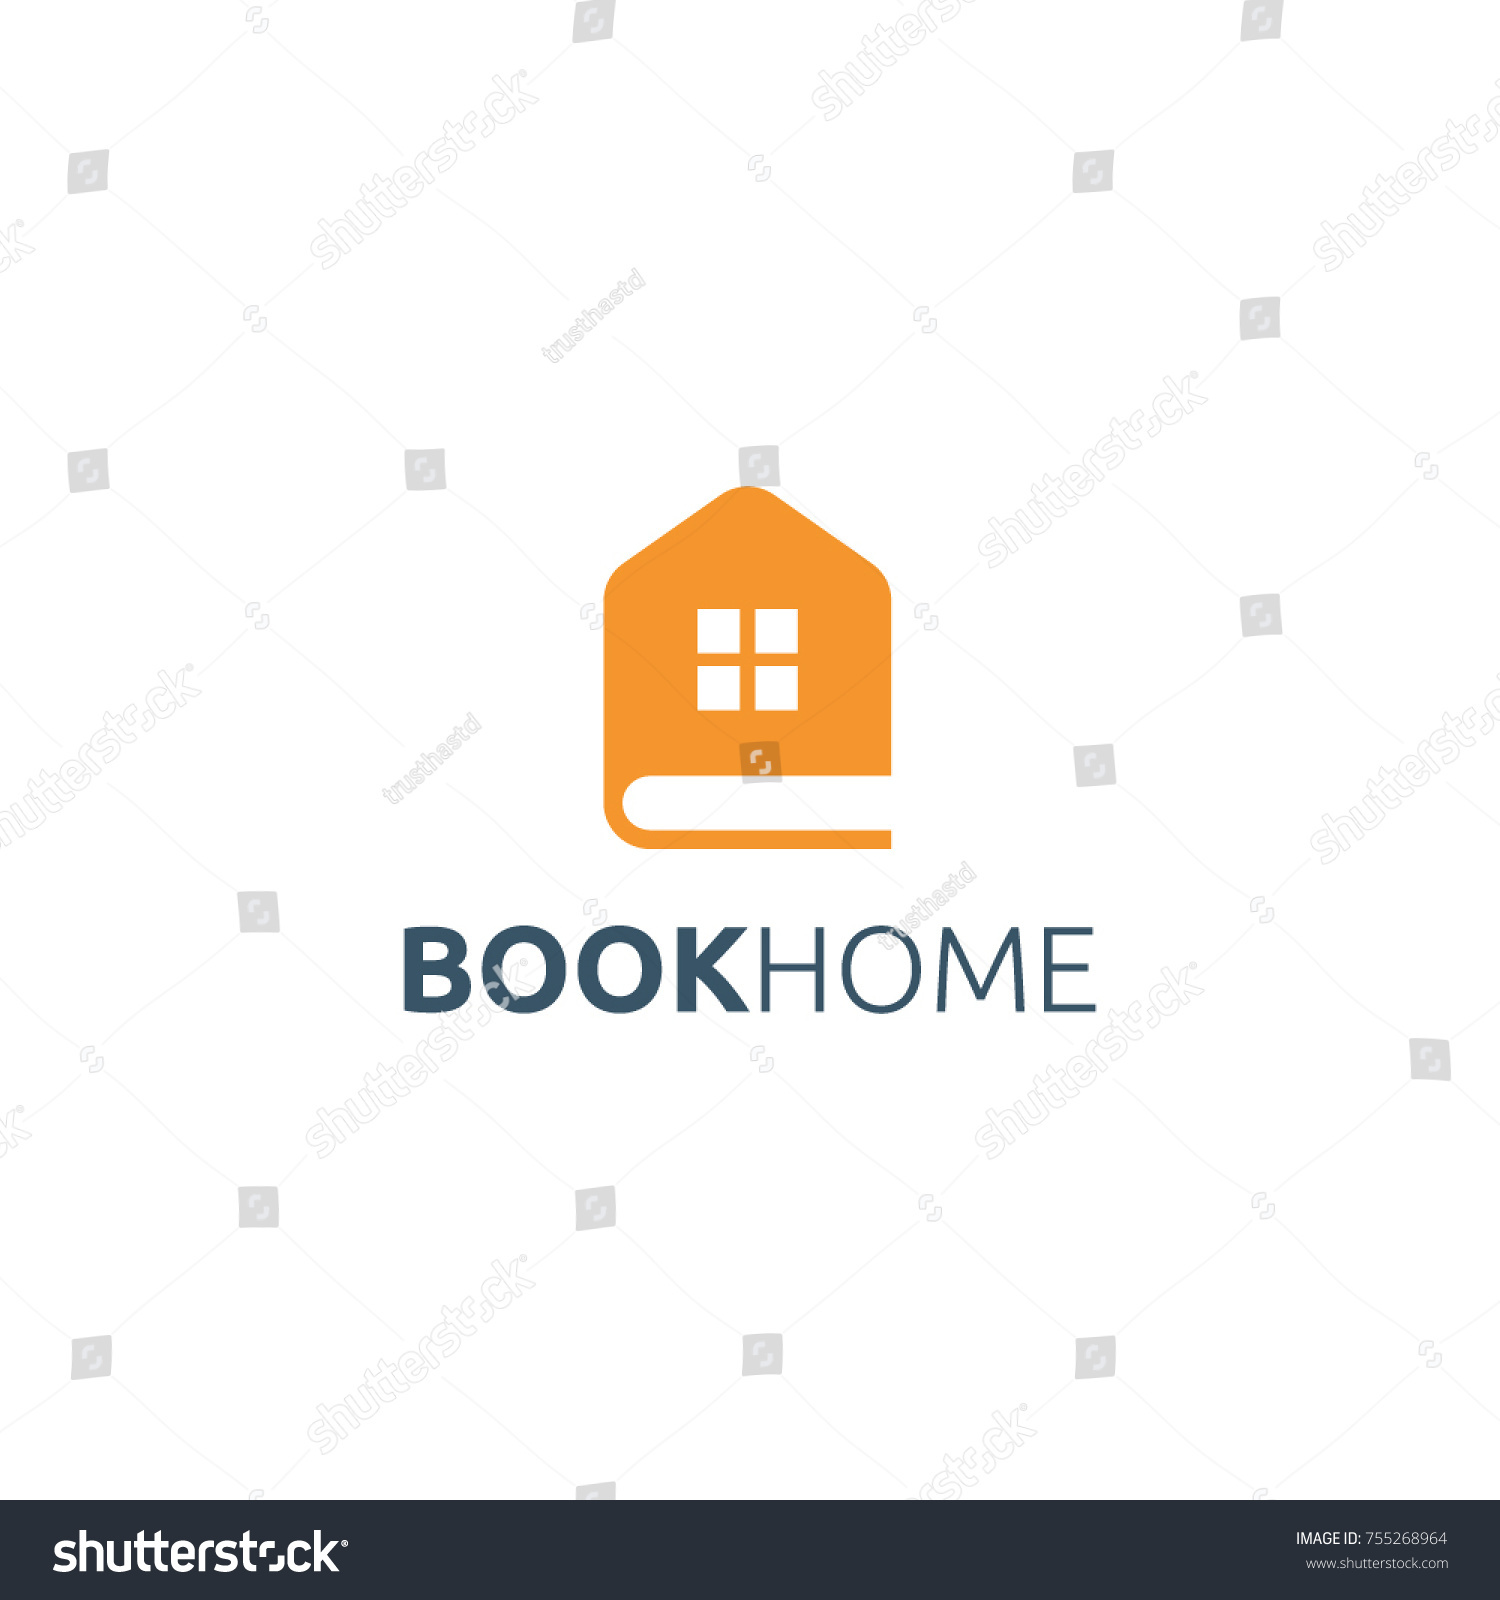 Book Home Logo Design Stock Vector 755268964 - Shutterstock